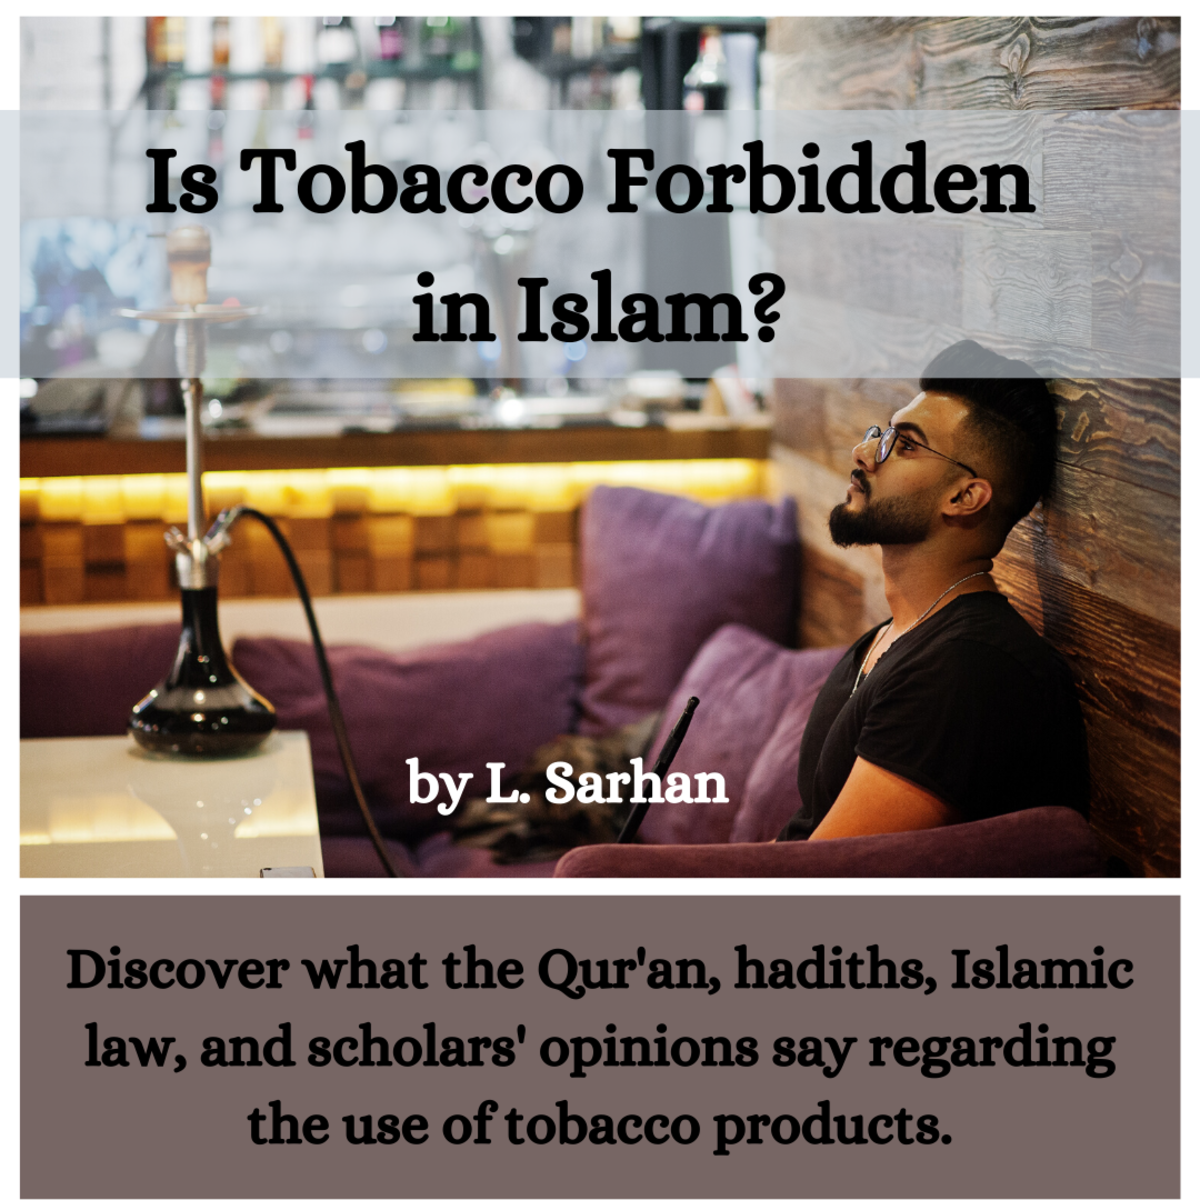 Is Tobacco Forbidden in Islam?